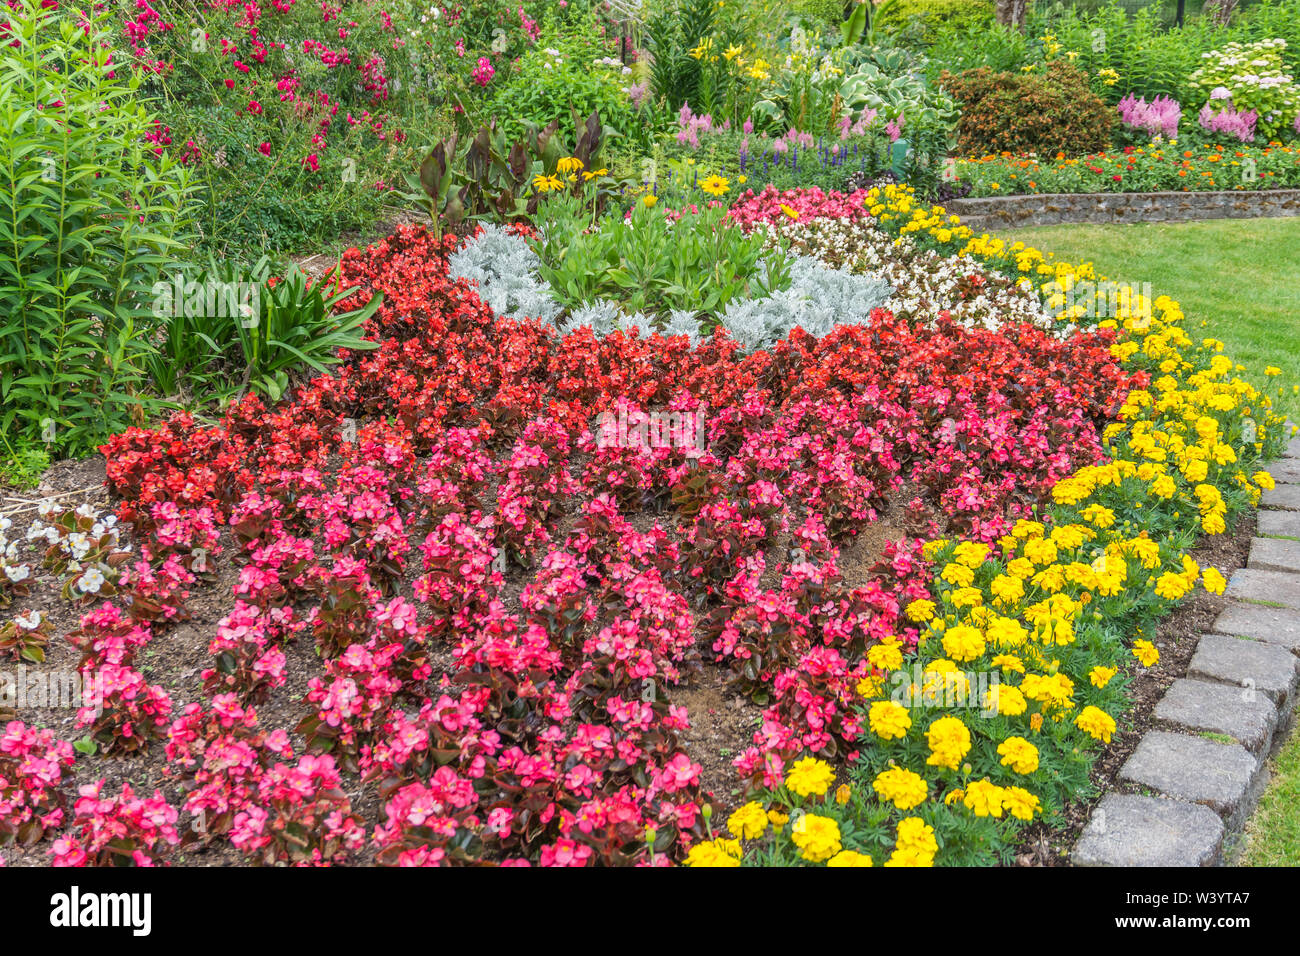 A view of a lawn and flower garden at Point Defiance Park in Tacoma, Washington. - Stock Image